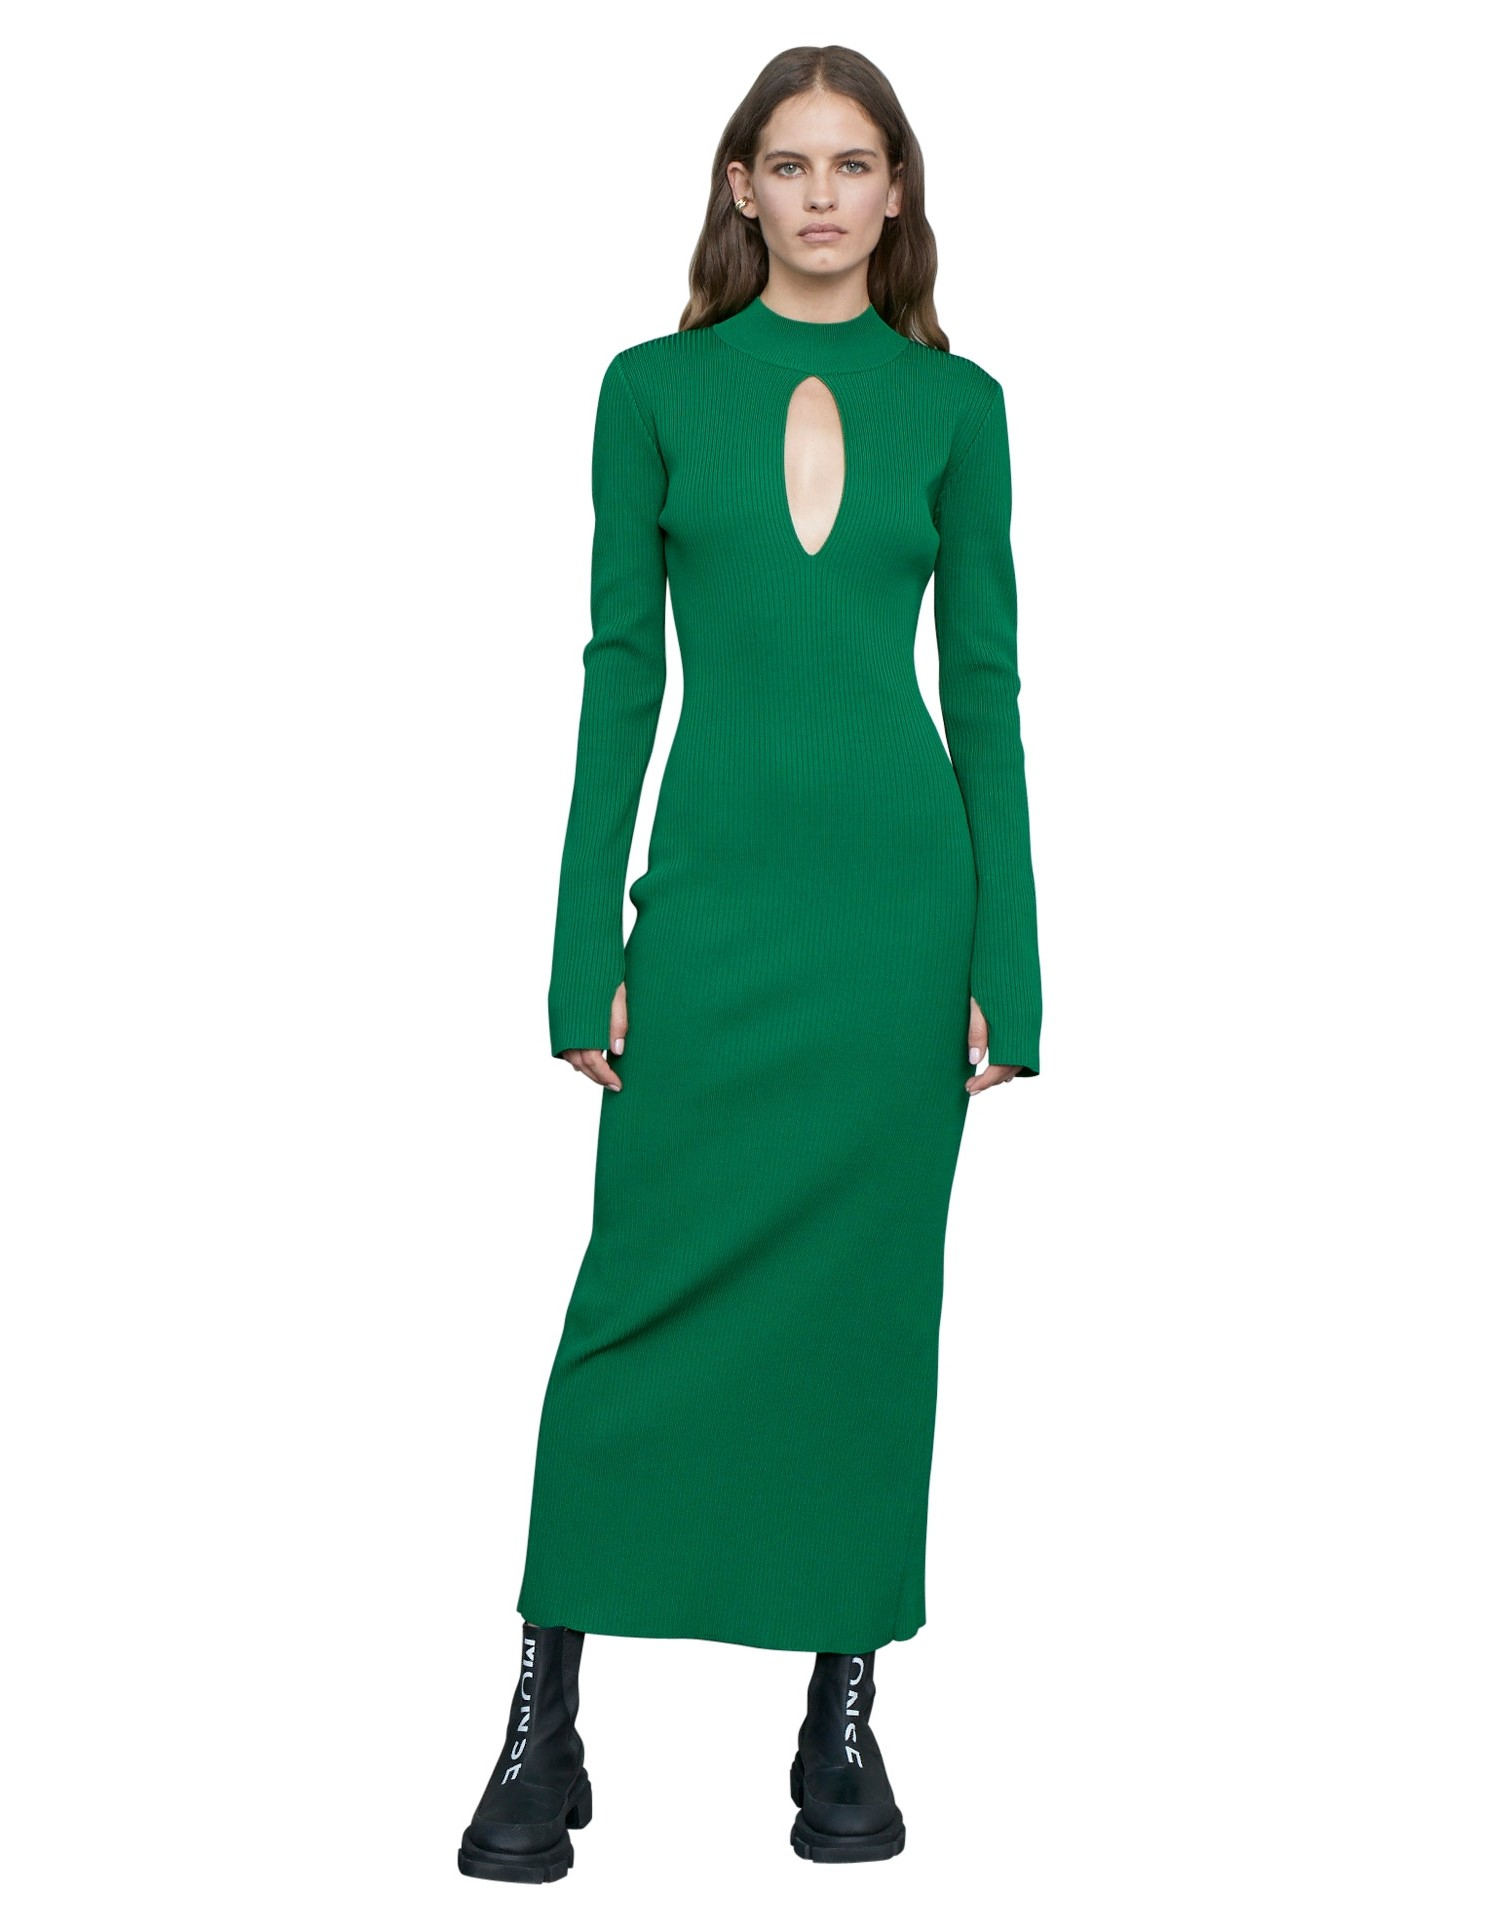 MONSE RIbbed Keyhole Knit Dress in Grass on Model Full Front View